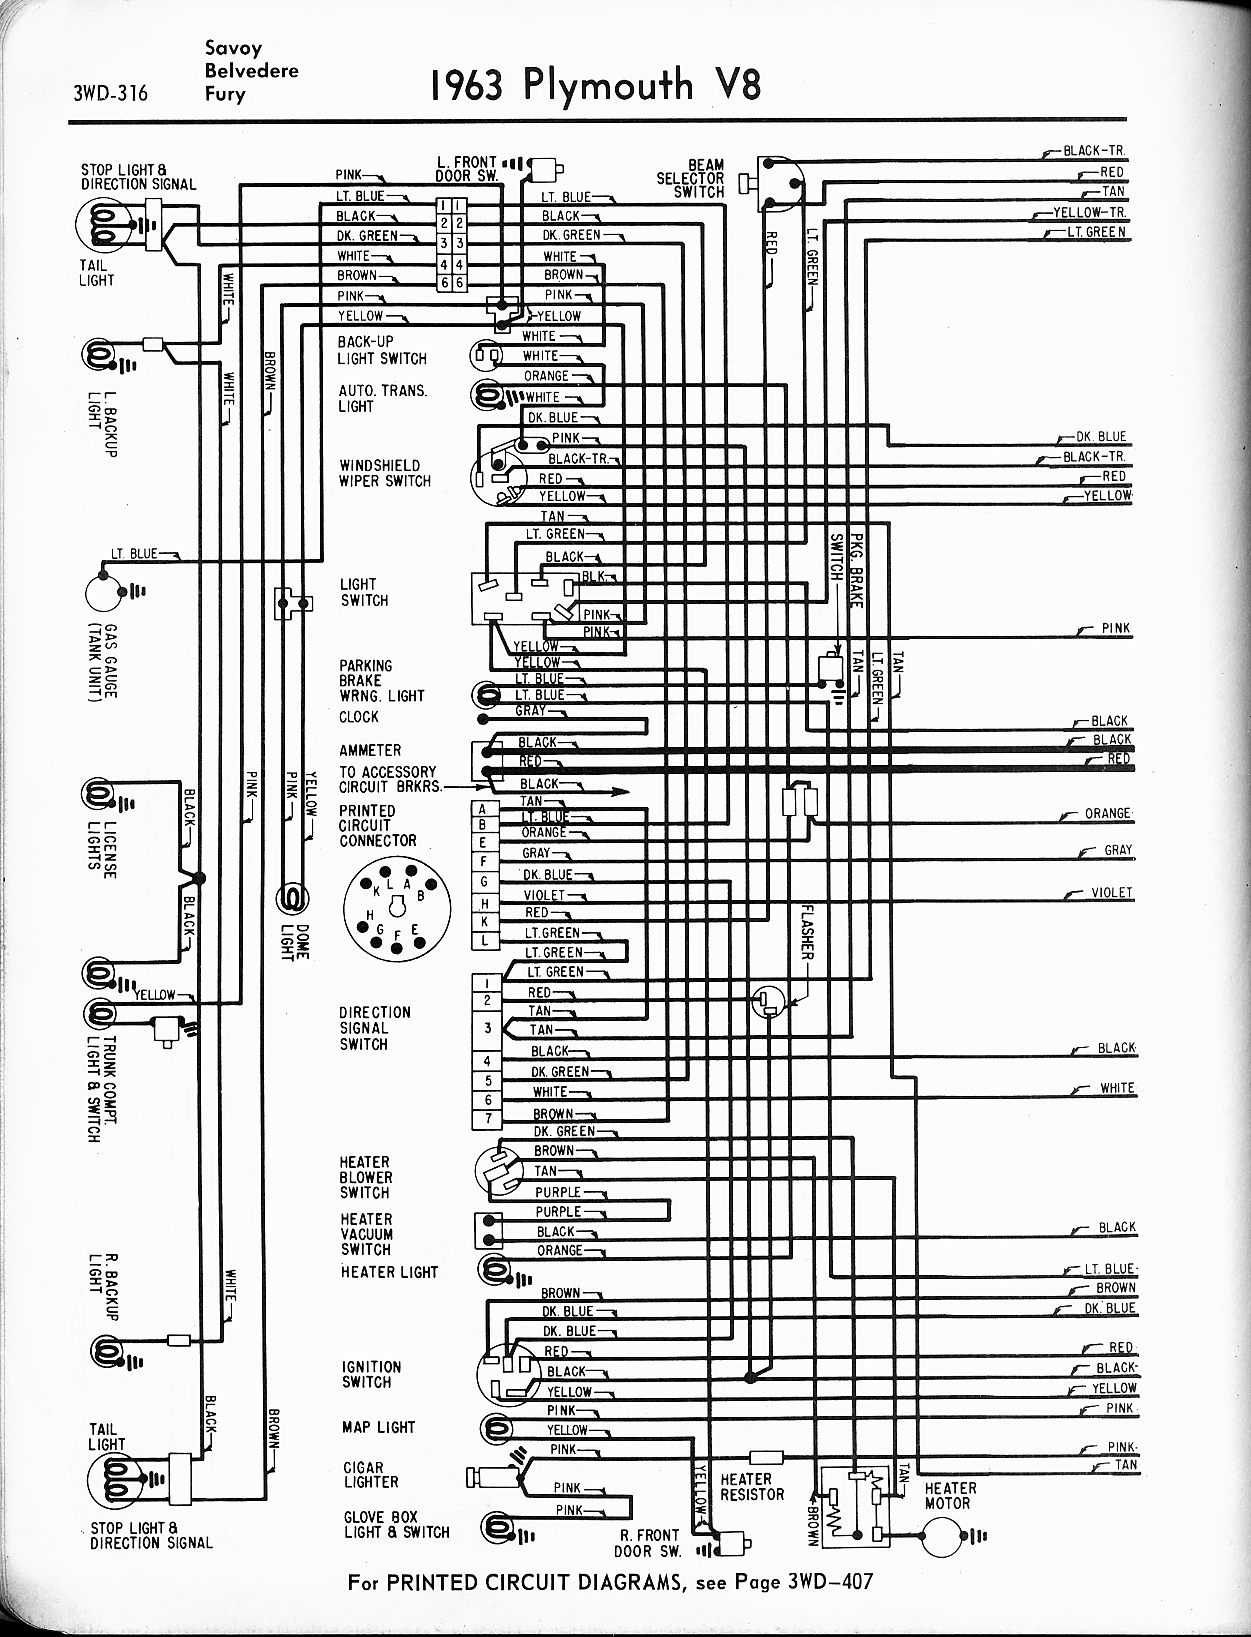 Alternator Wiring Diagram 1963 Plymouth Fury Diy Enthusiasts 1970 Chrysler 1956 1965 The Old Car Manual Project Rh Oldcarmanualproject Com